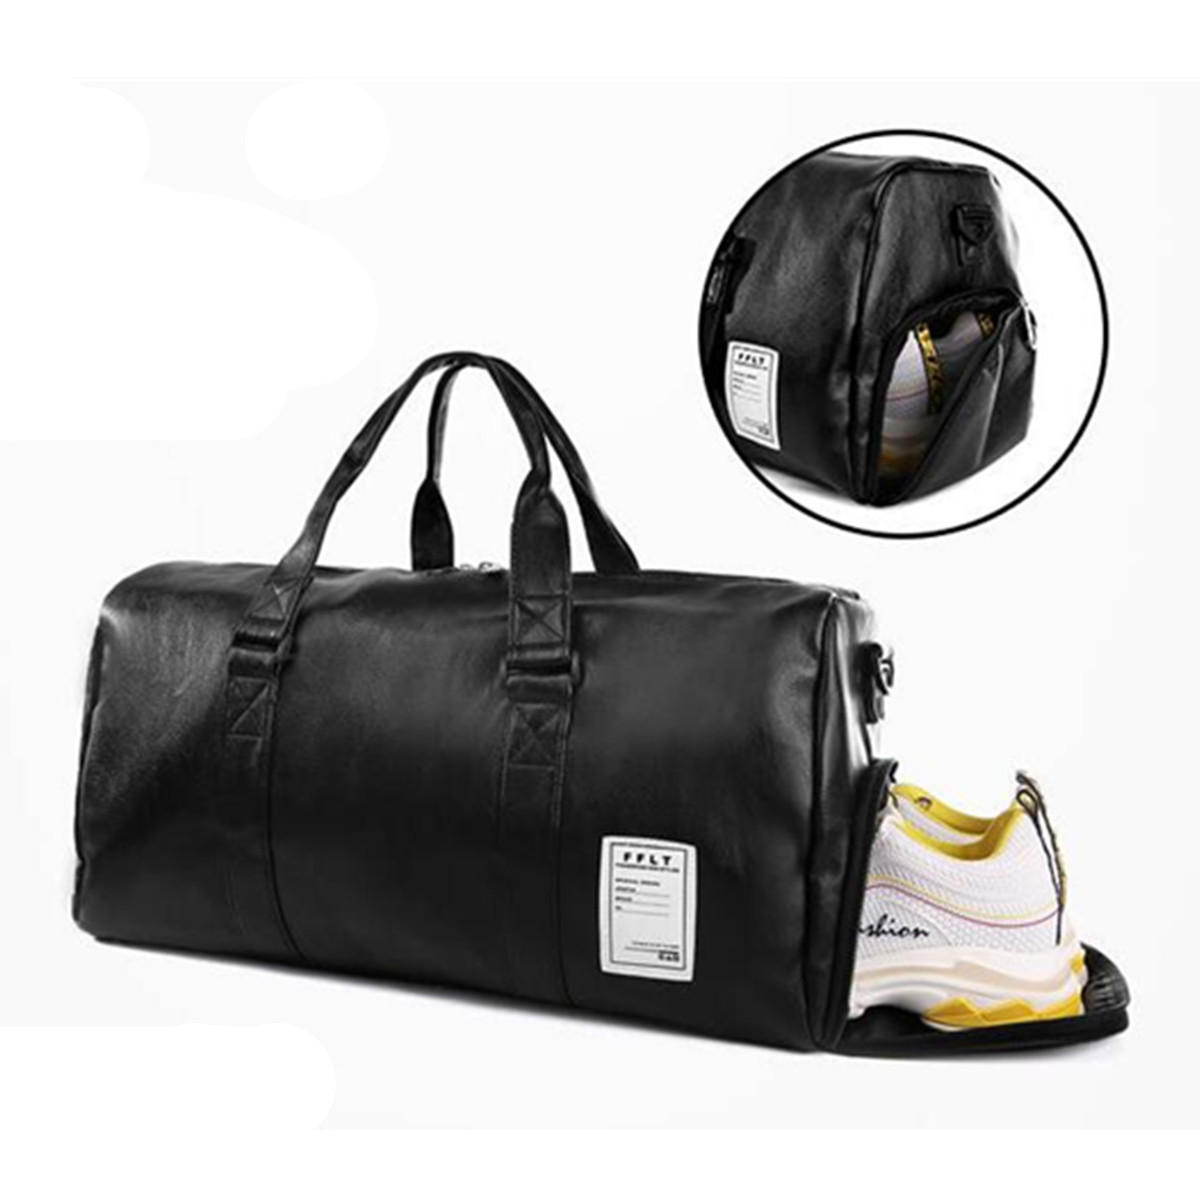 33L Outdoor Sports Gym Duffel Shoulder Bag Travel Luggage Handbag Shoe  Storage Organizer Men Women COD f09ba052cd03f